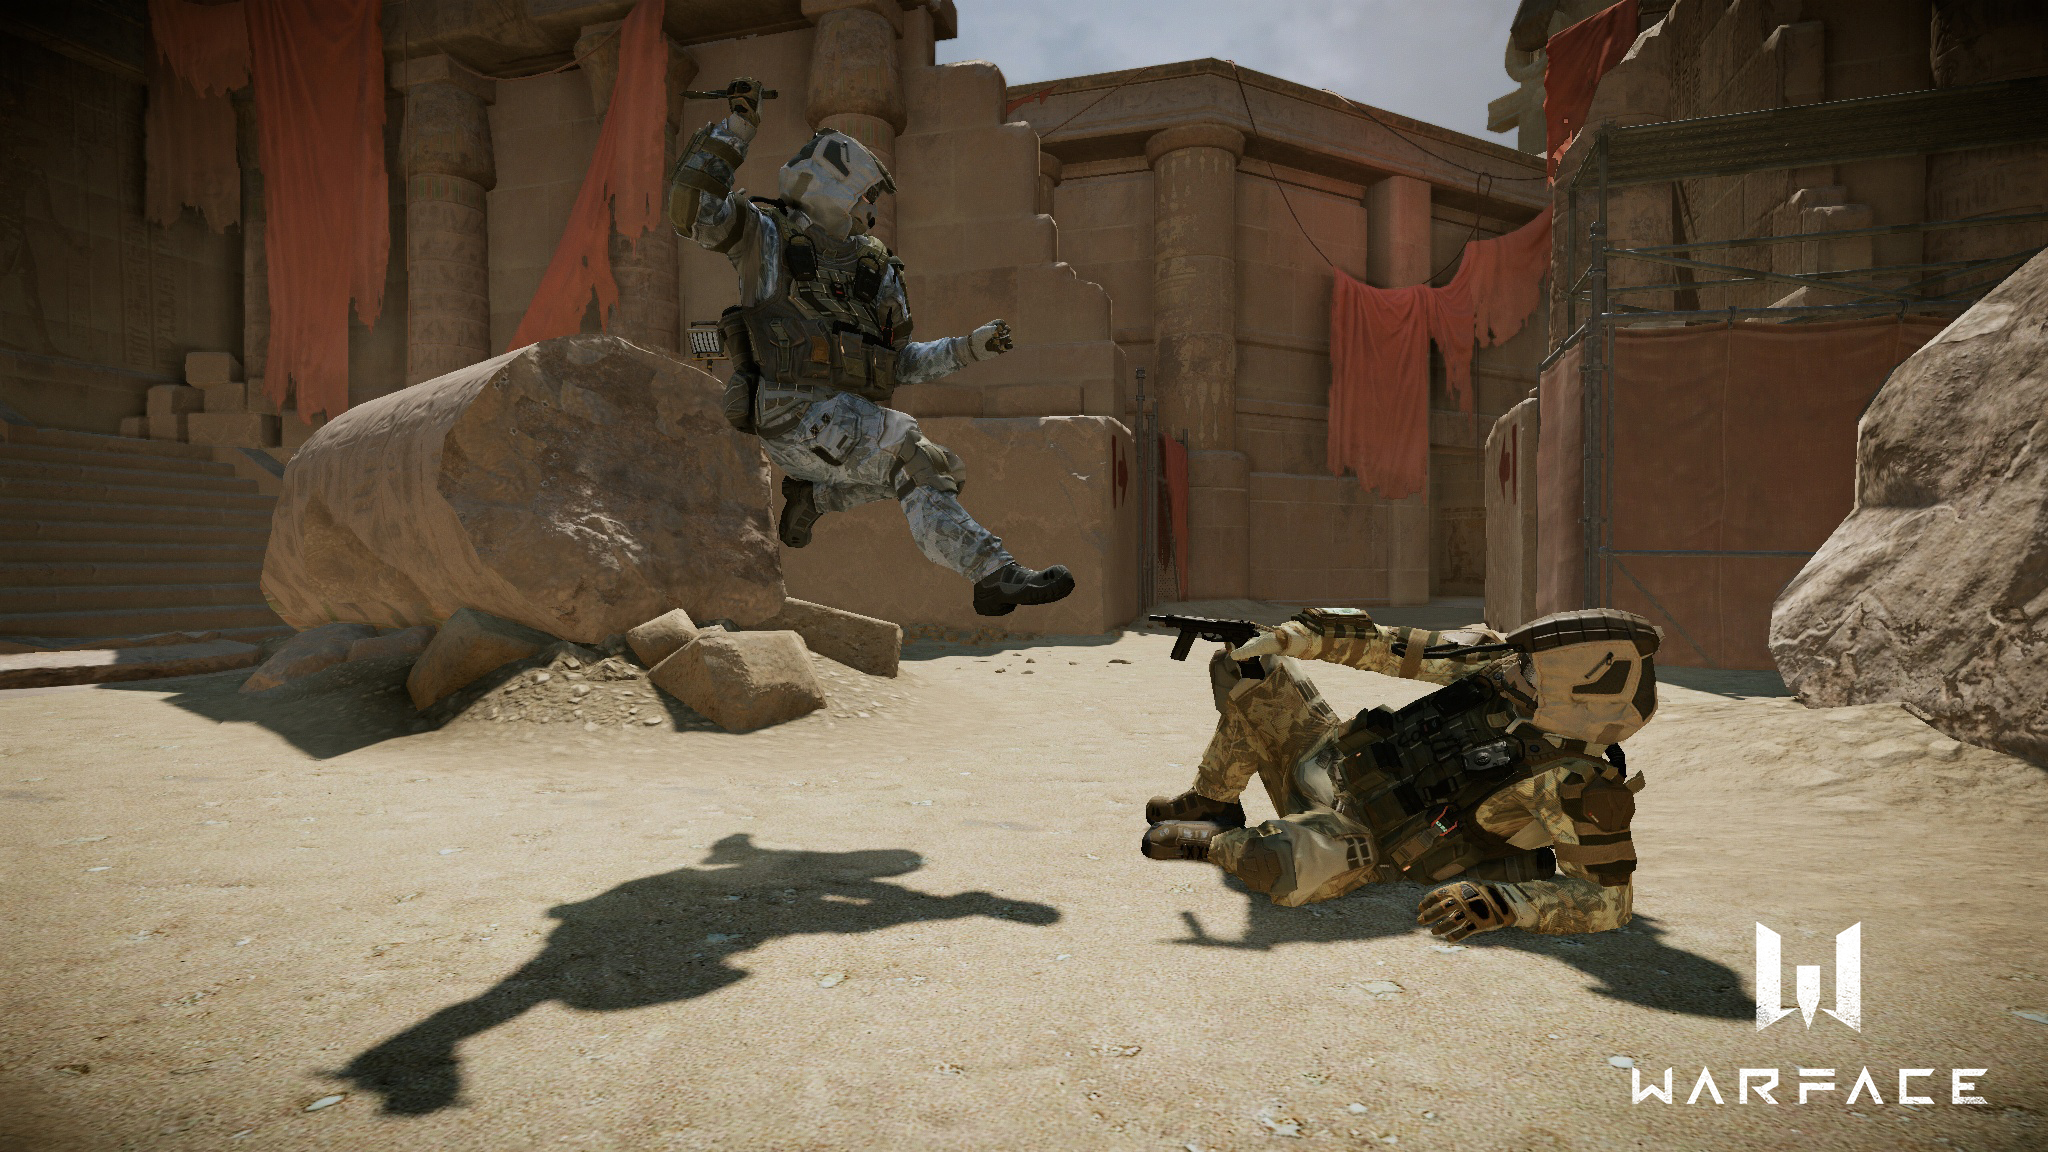 Free-to-play FPS, Warface, coming to PS4 and Xbox One this